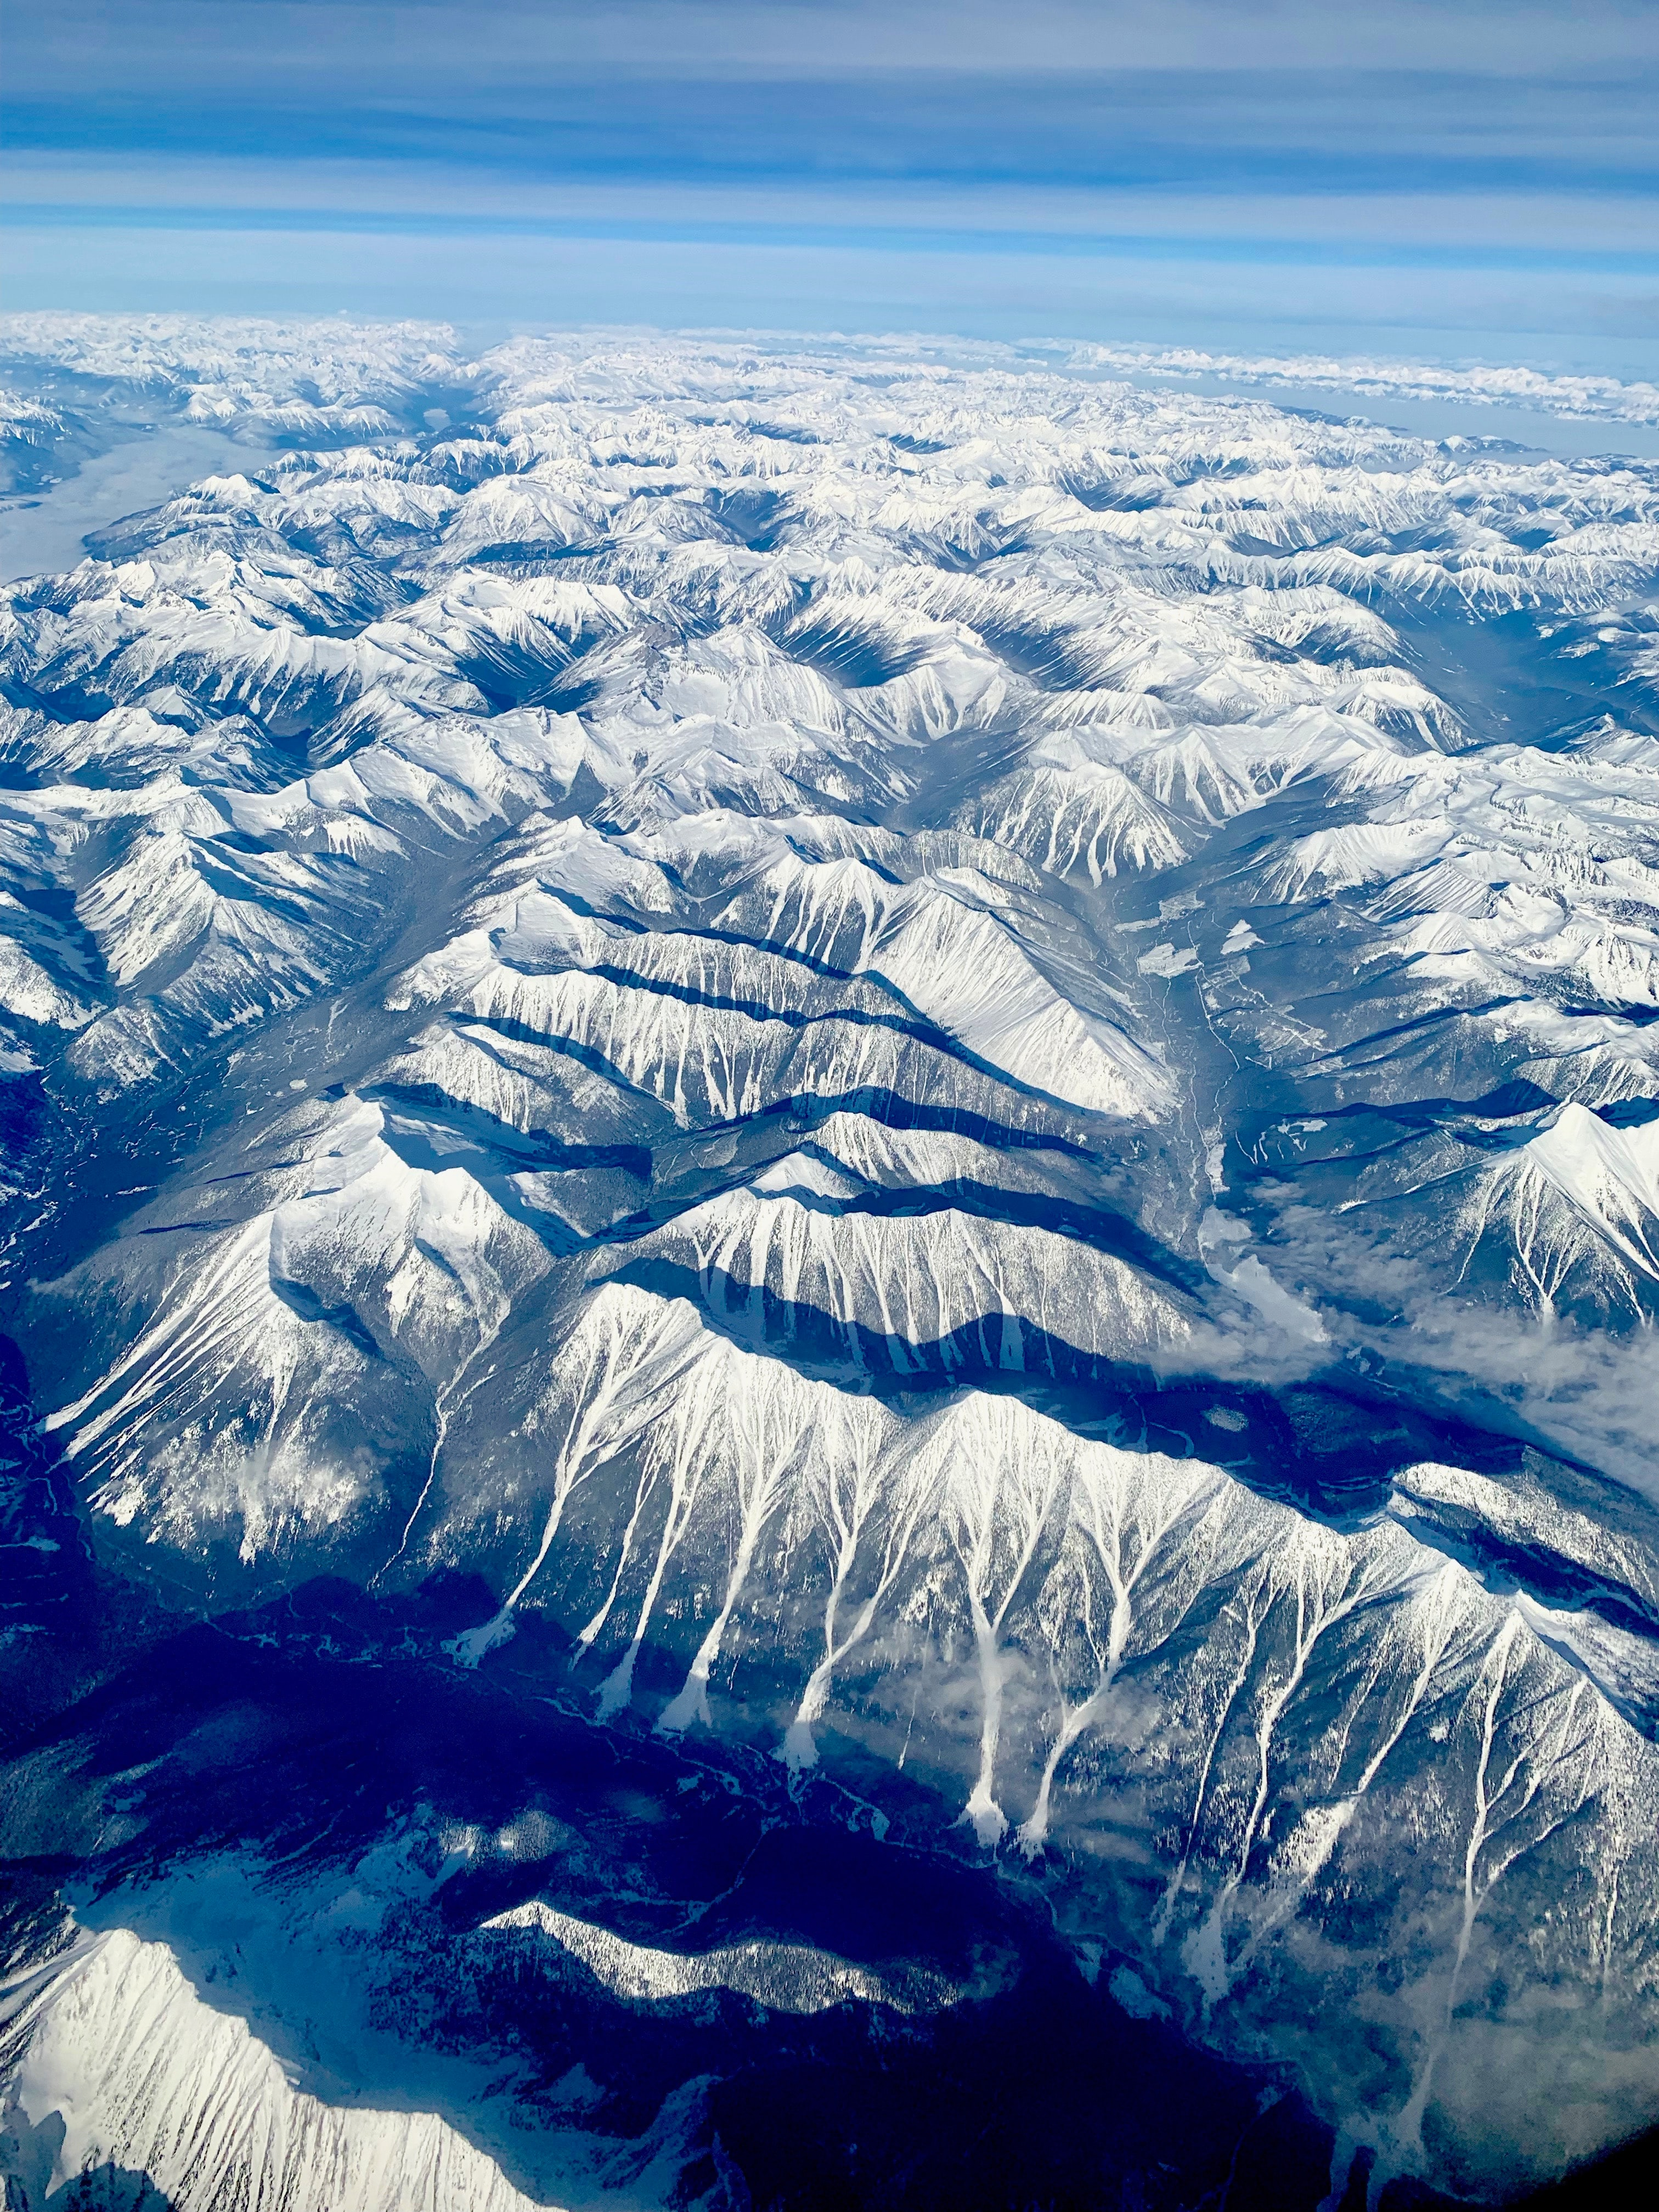 aerial photo of mountains near body of water during daytime